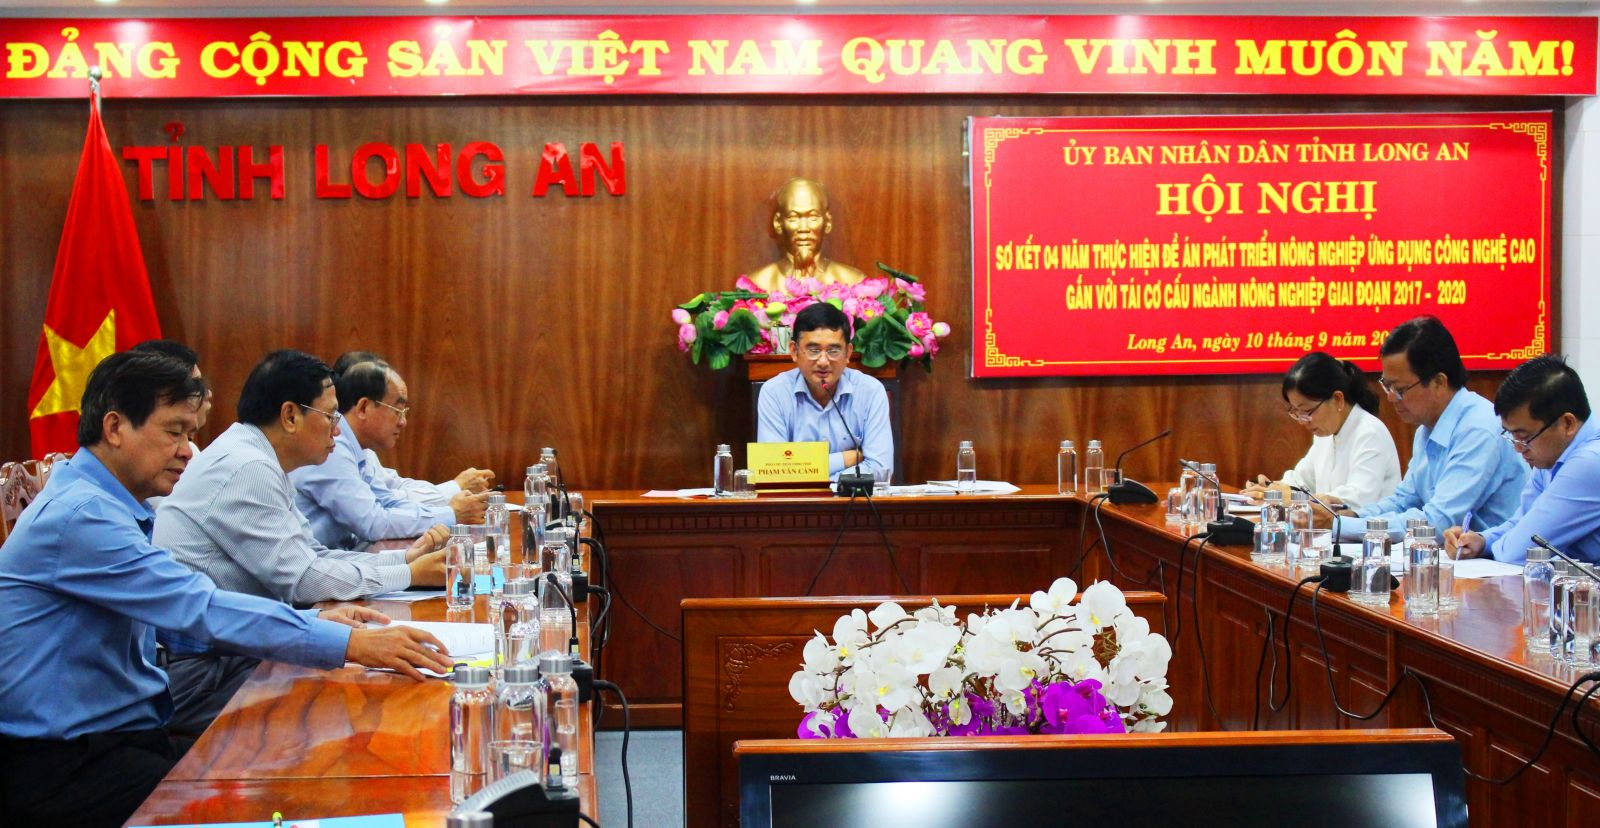 According to Vice Chairman of the Provincial People's Committee - Pham Van Canh, the province will continue to implement the project in period 2021 – 2025, in which the area is expanded and lemon trees and shrimp are applied